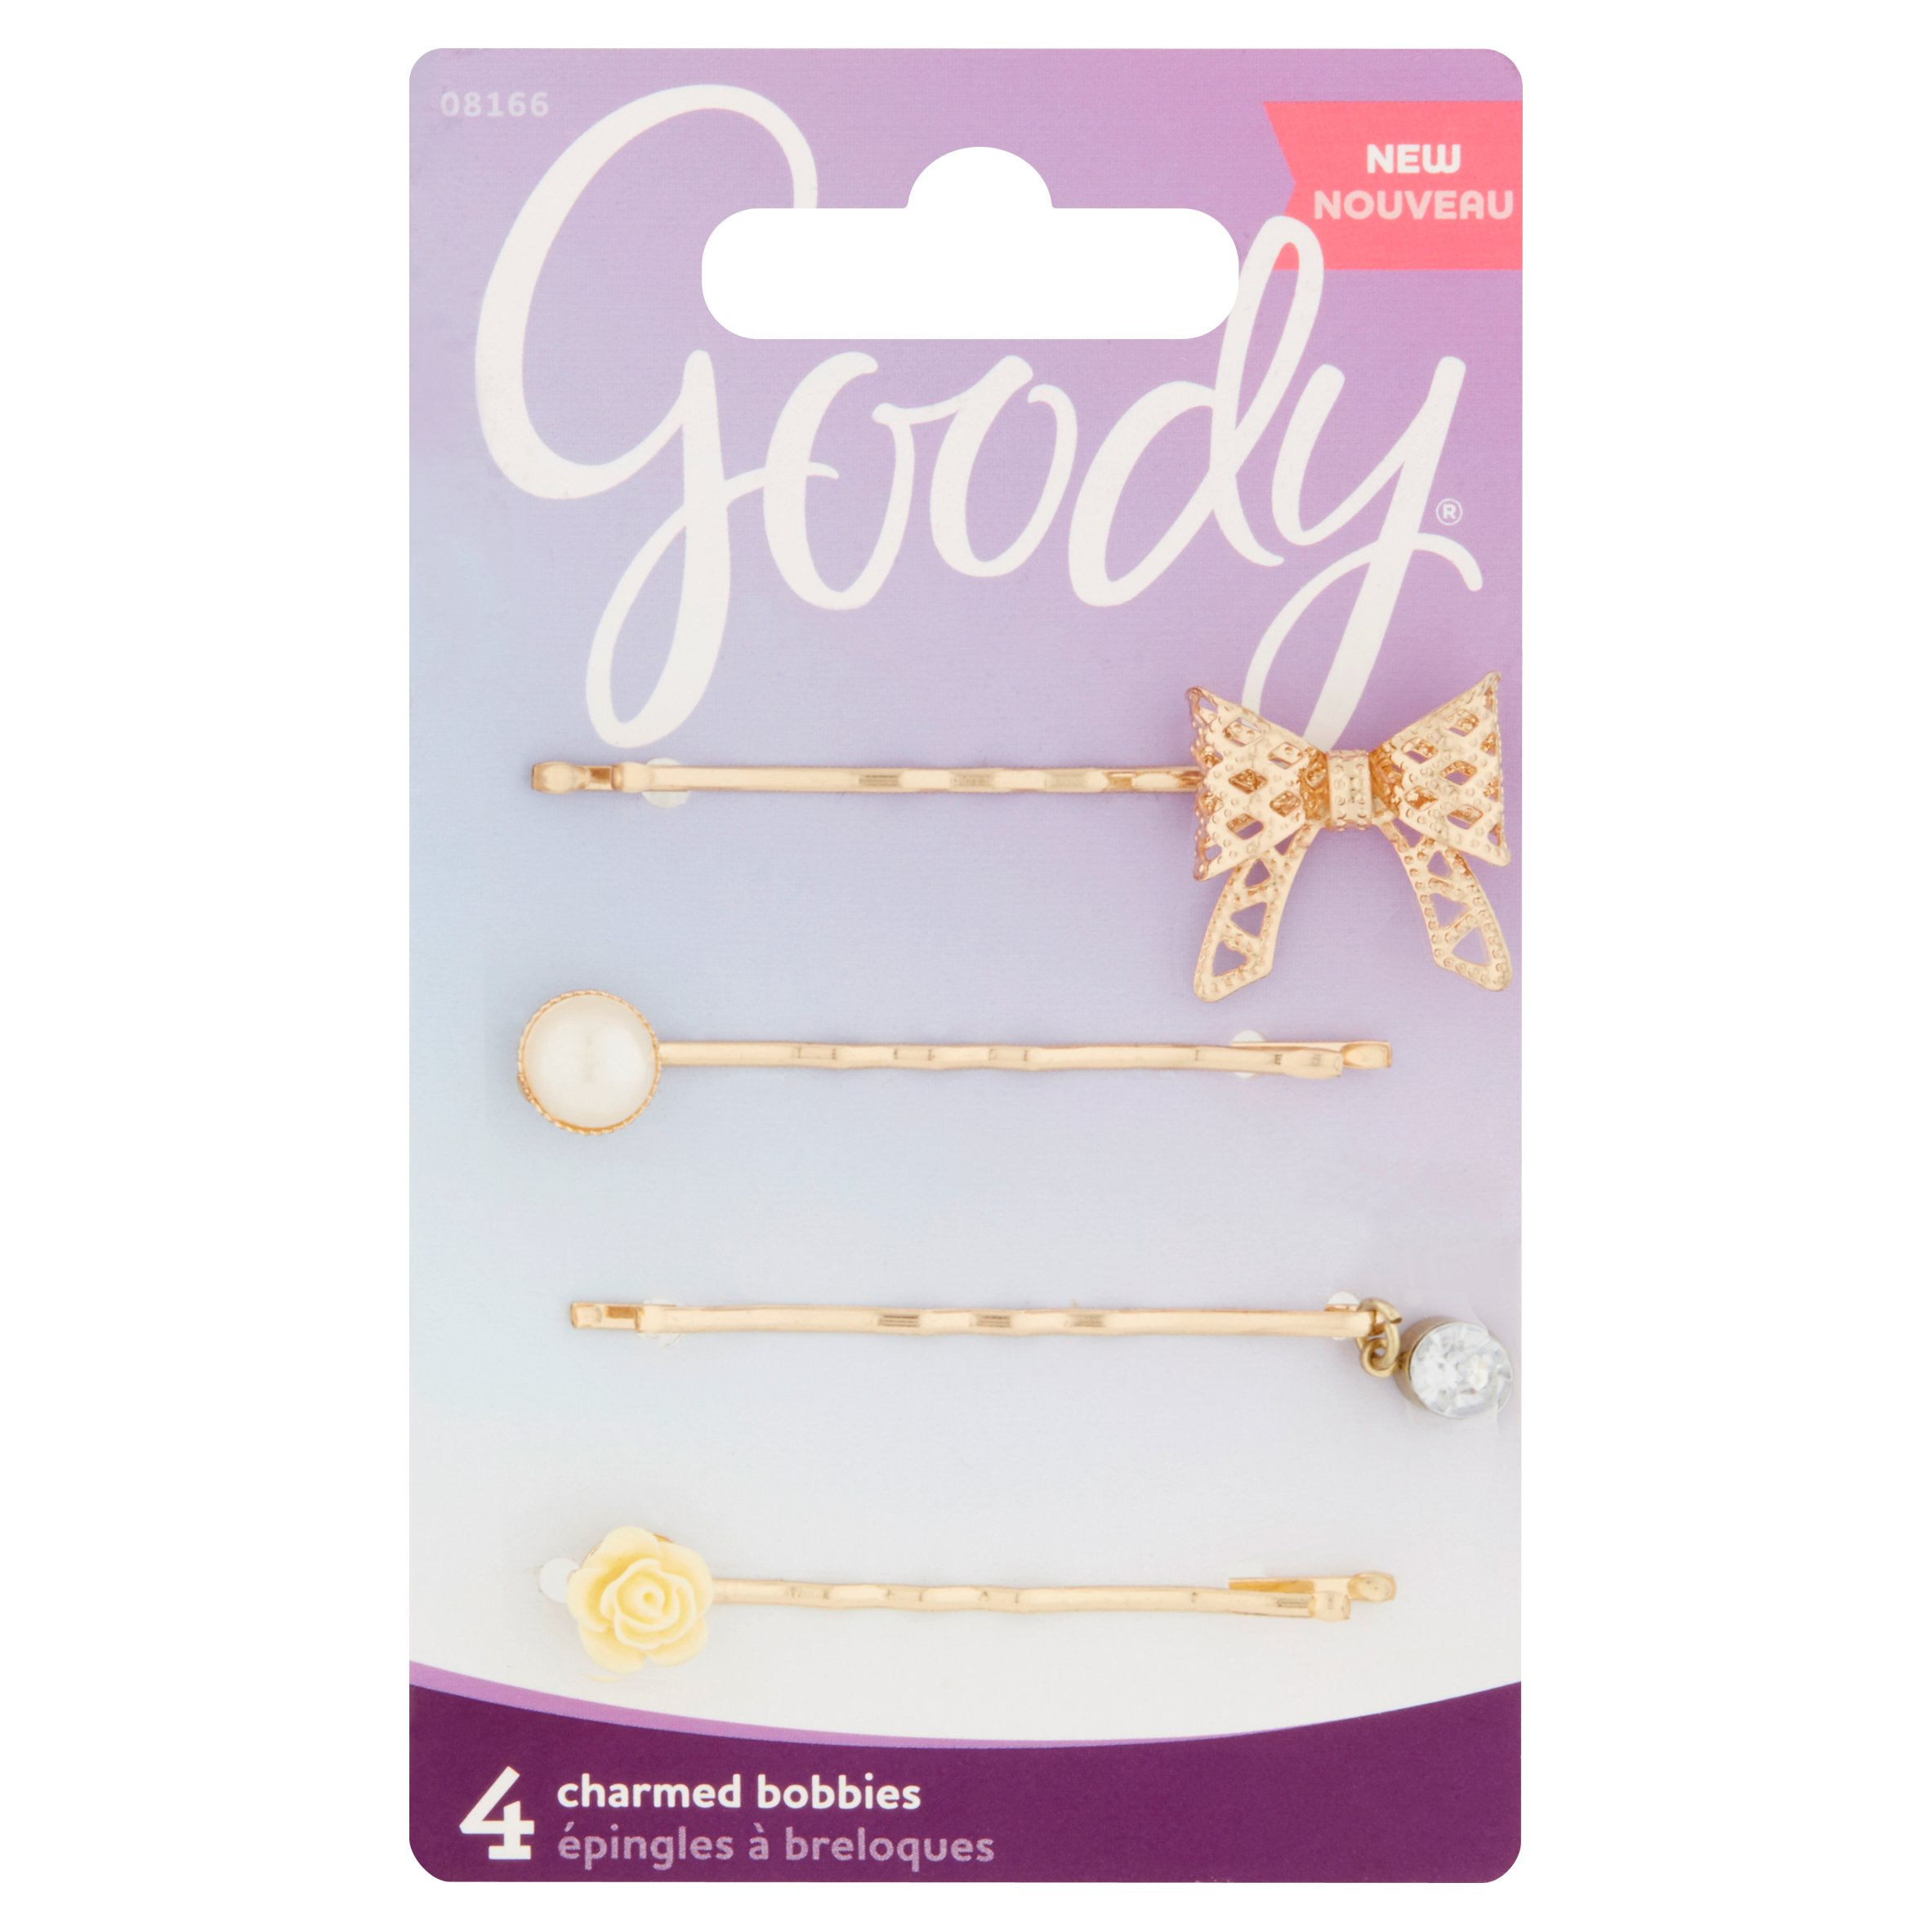 (2 Pack) Goody Charmed Bobbies, 4 count